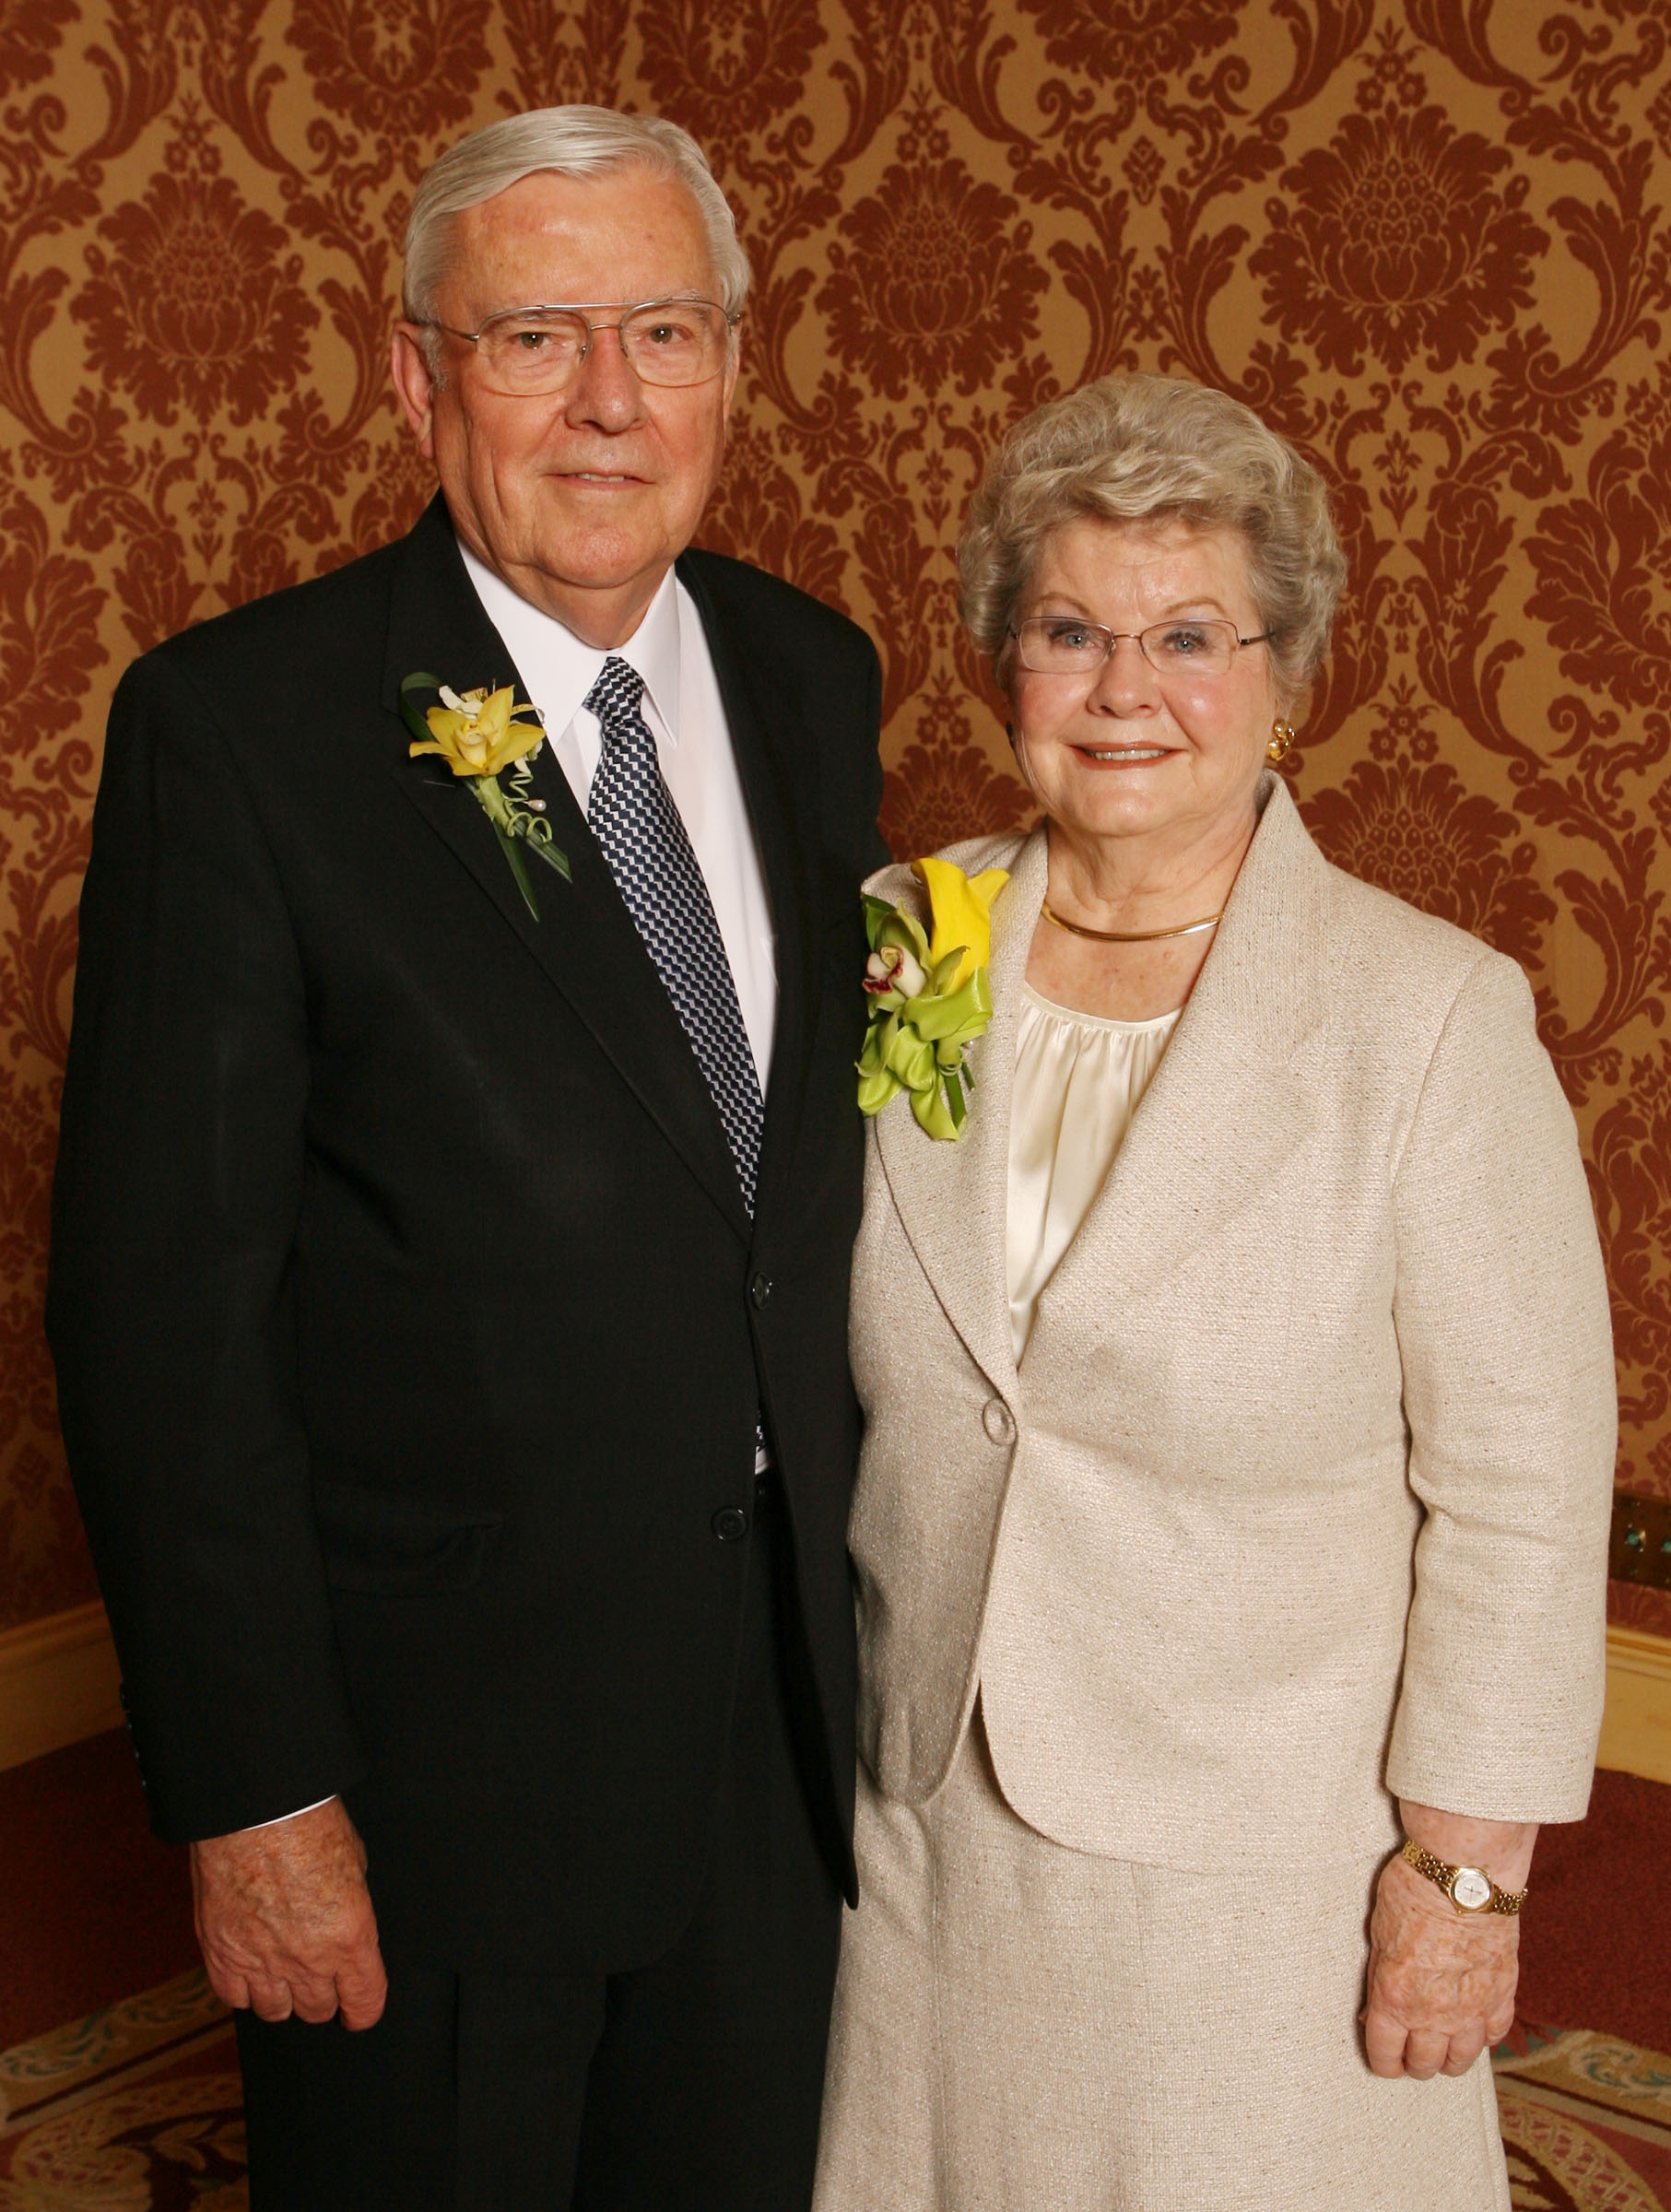 Elder M. Russell Ballard and his wife, Sister Barbara B. Ballard, prior to receiving the Legacy of Life Award April 17, 2008, in Salt Lake City.